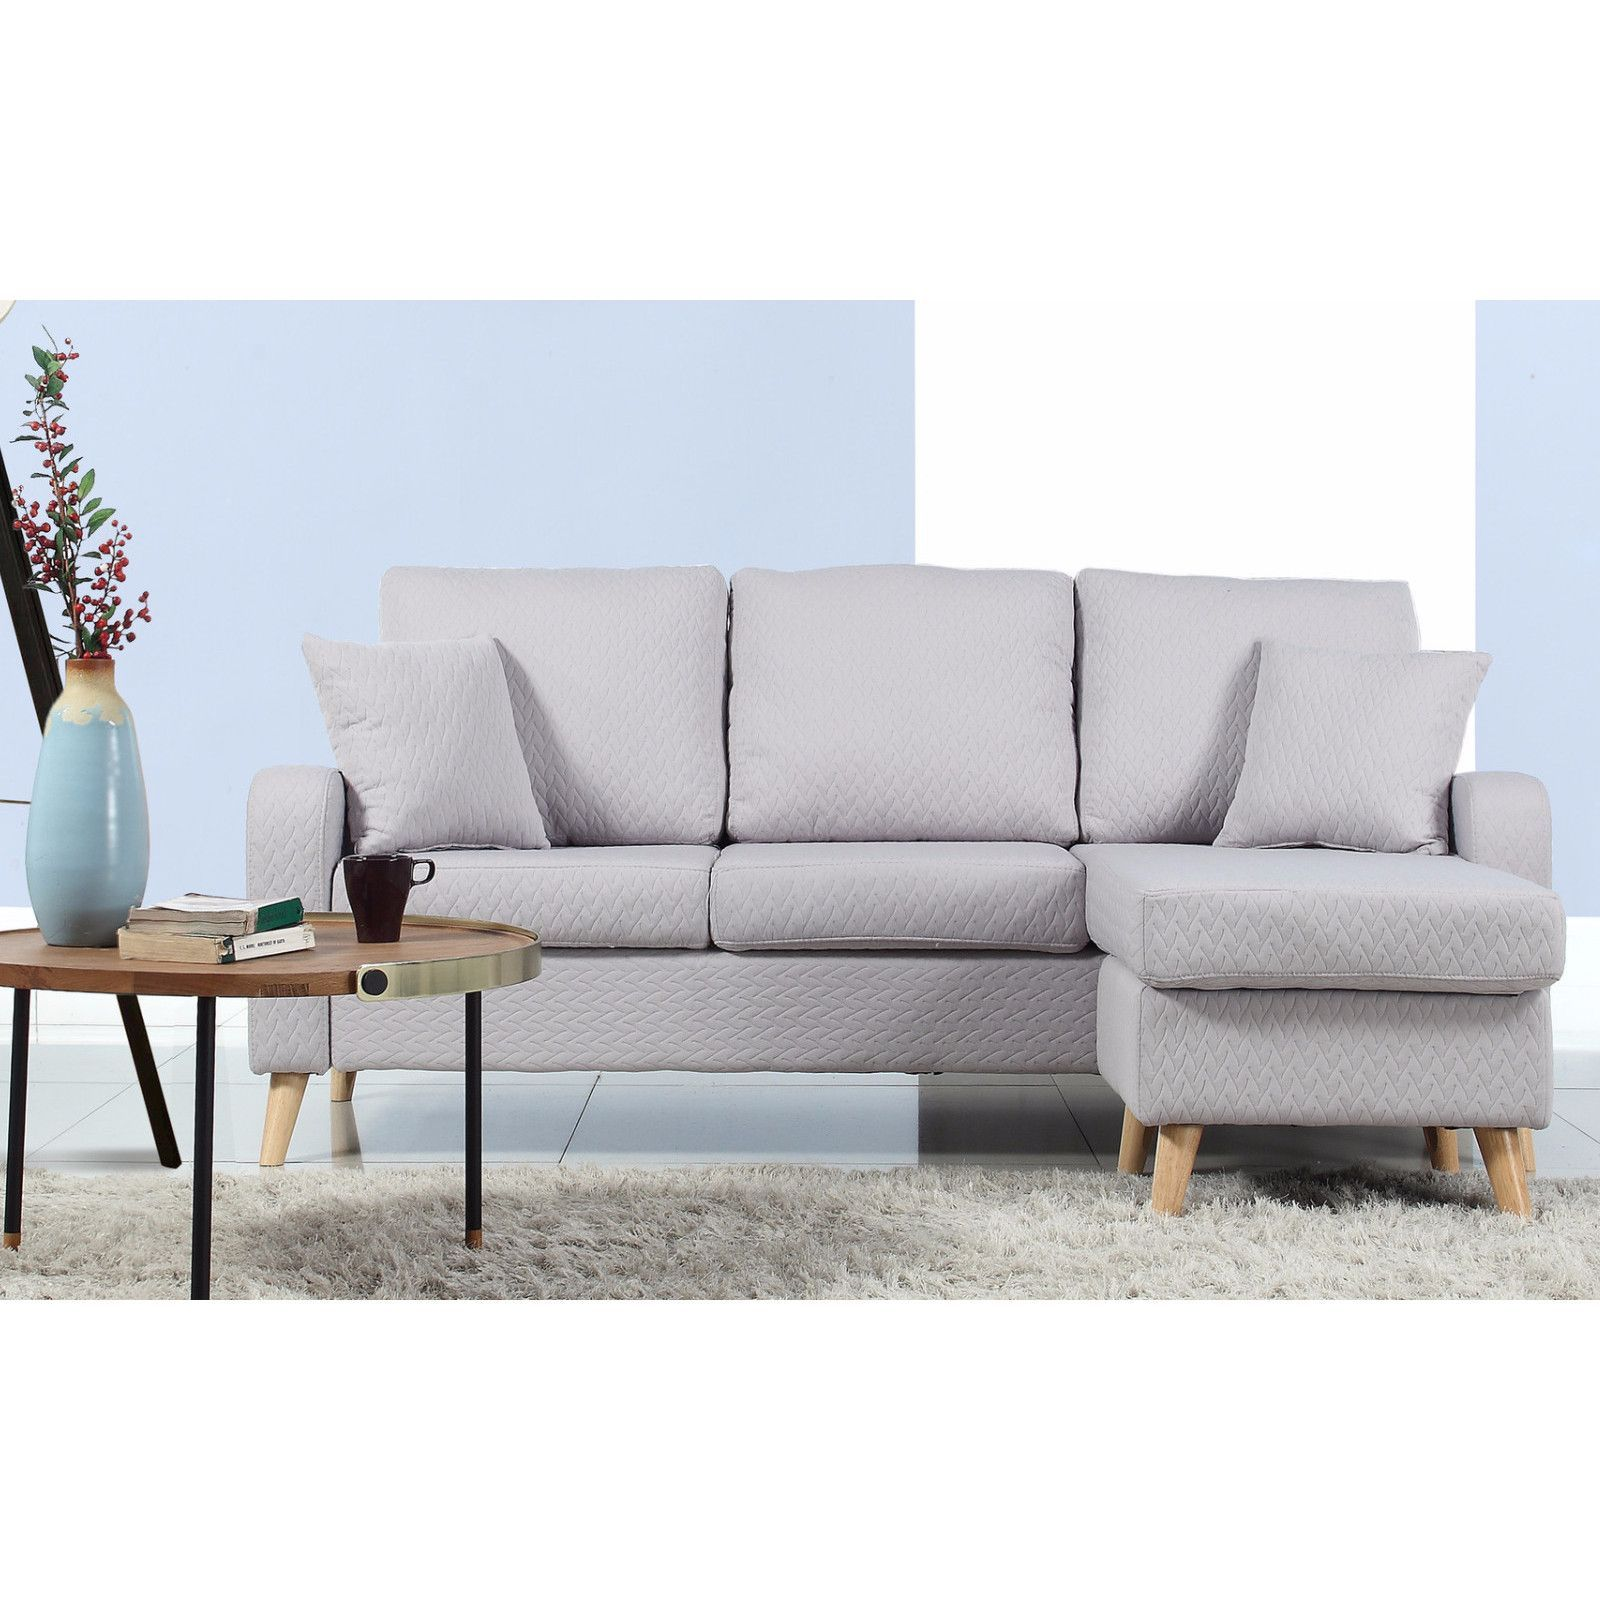 Mid Century Modern Small Space Sectional Sofa With Reversible Chase N A Removable Cushions Scandinavian Beach Yellow Small Sectional Sofa Small Space Sectional Sectional Sofa